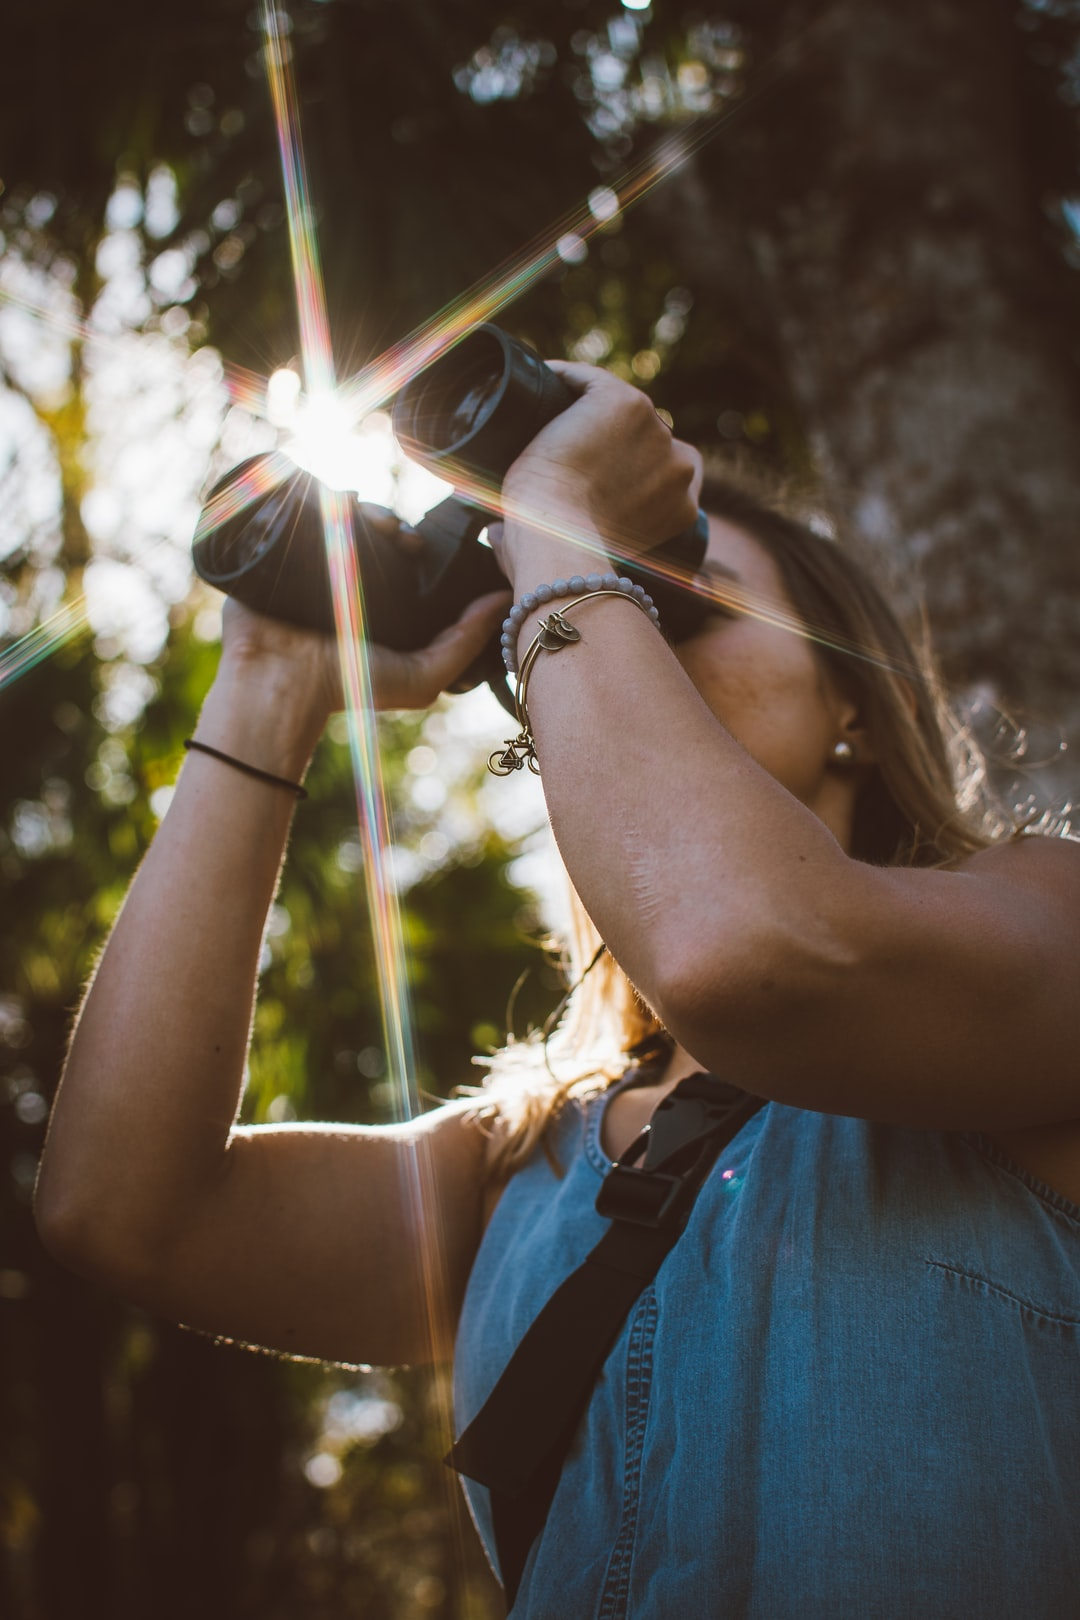 woman using binoculars in forest